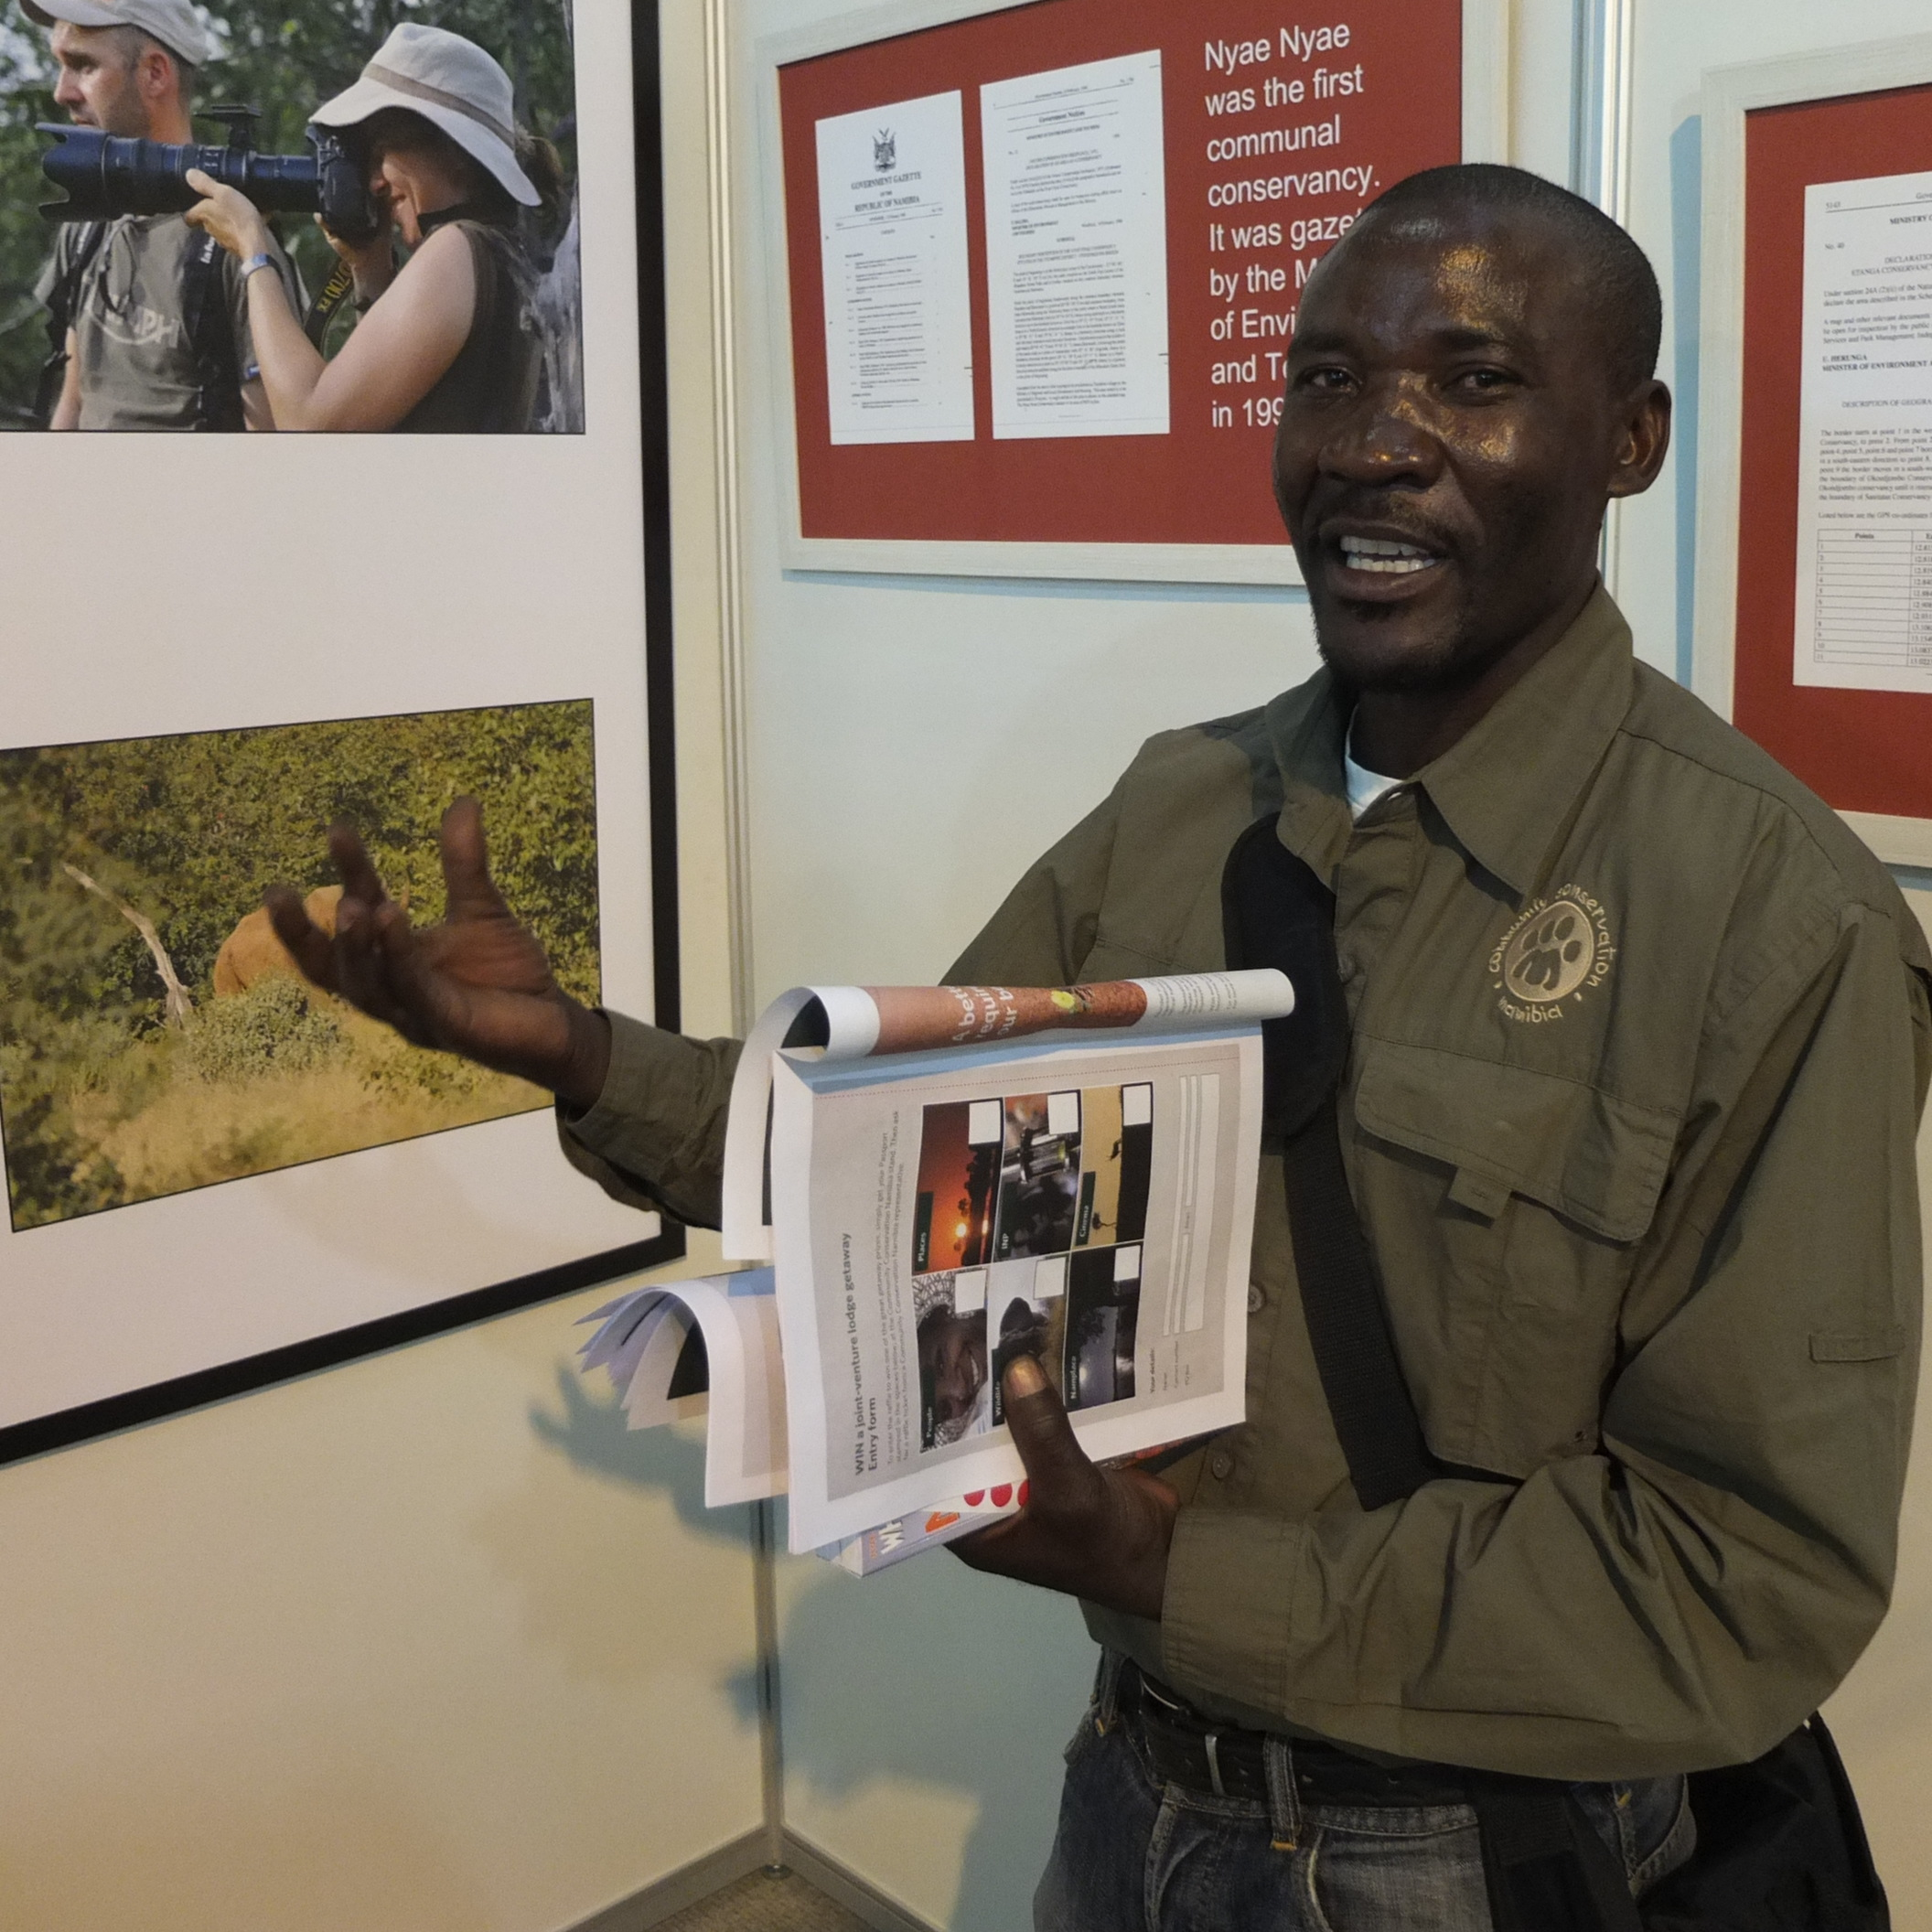 Conservancy stand at the the 2013 Tourism expo in May.